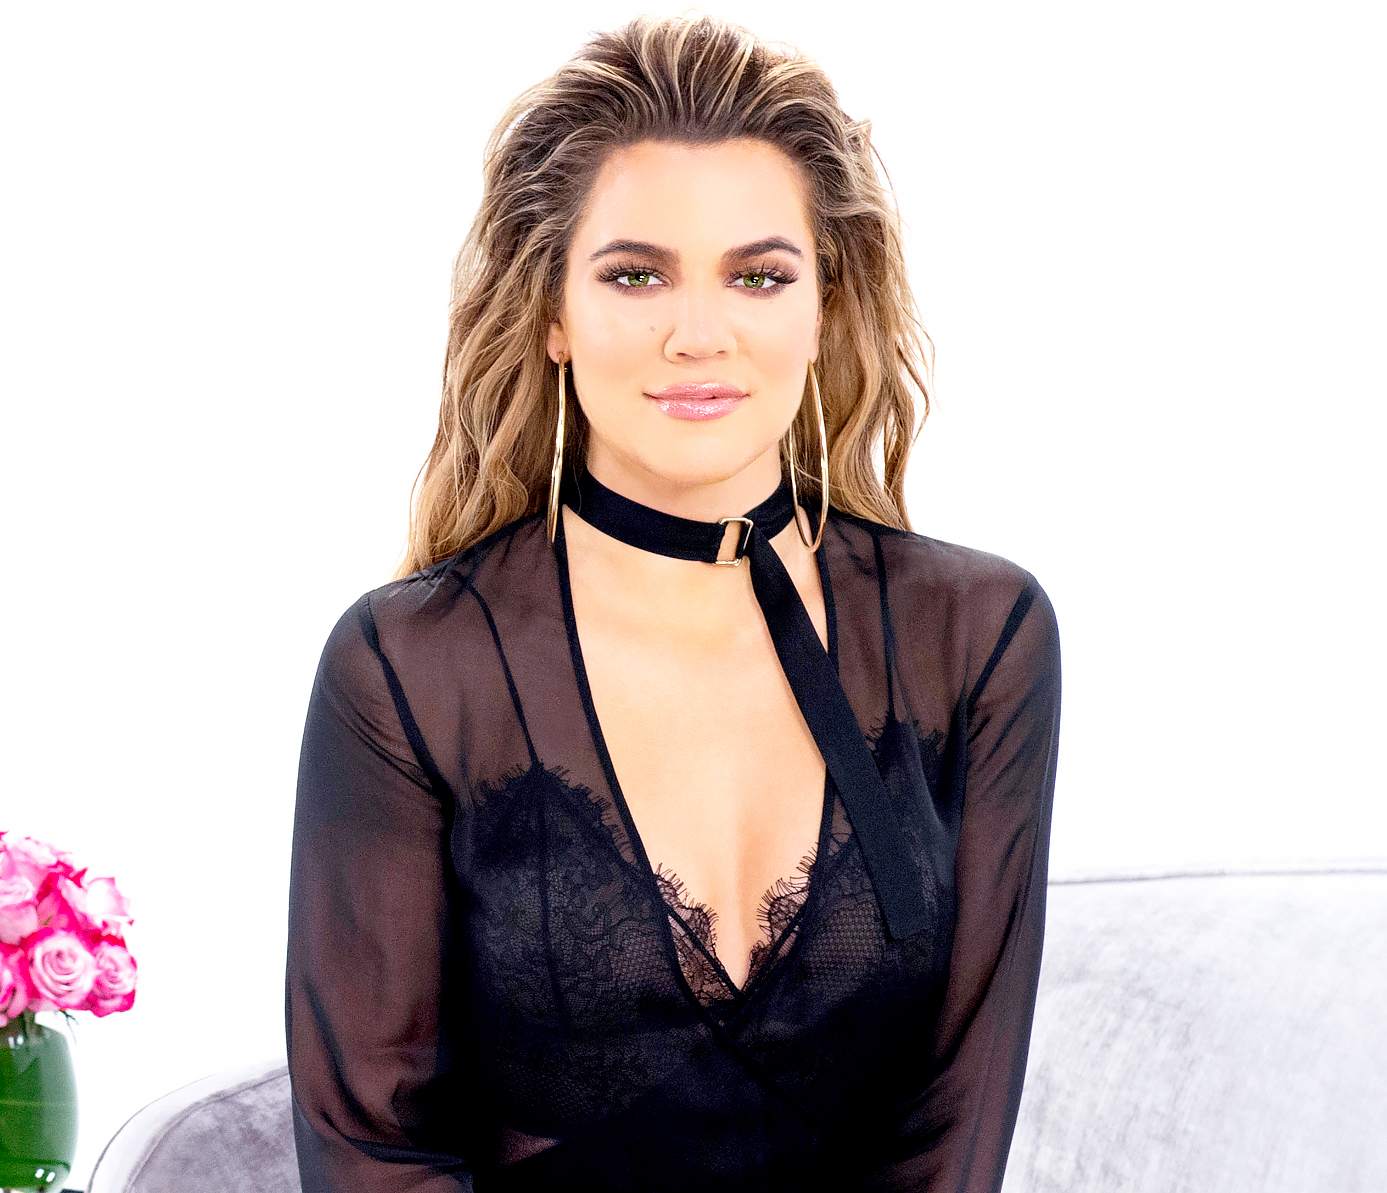 Khloe Kardashian Remains Mum on Sister Kylie's Pregnancy Gossip